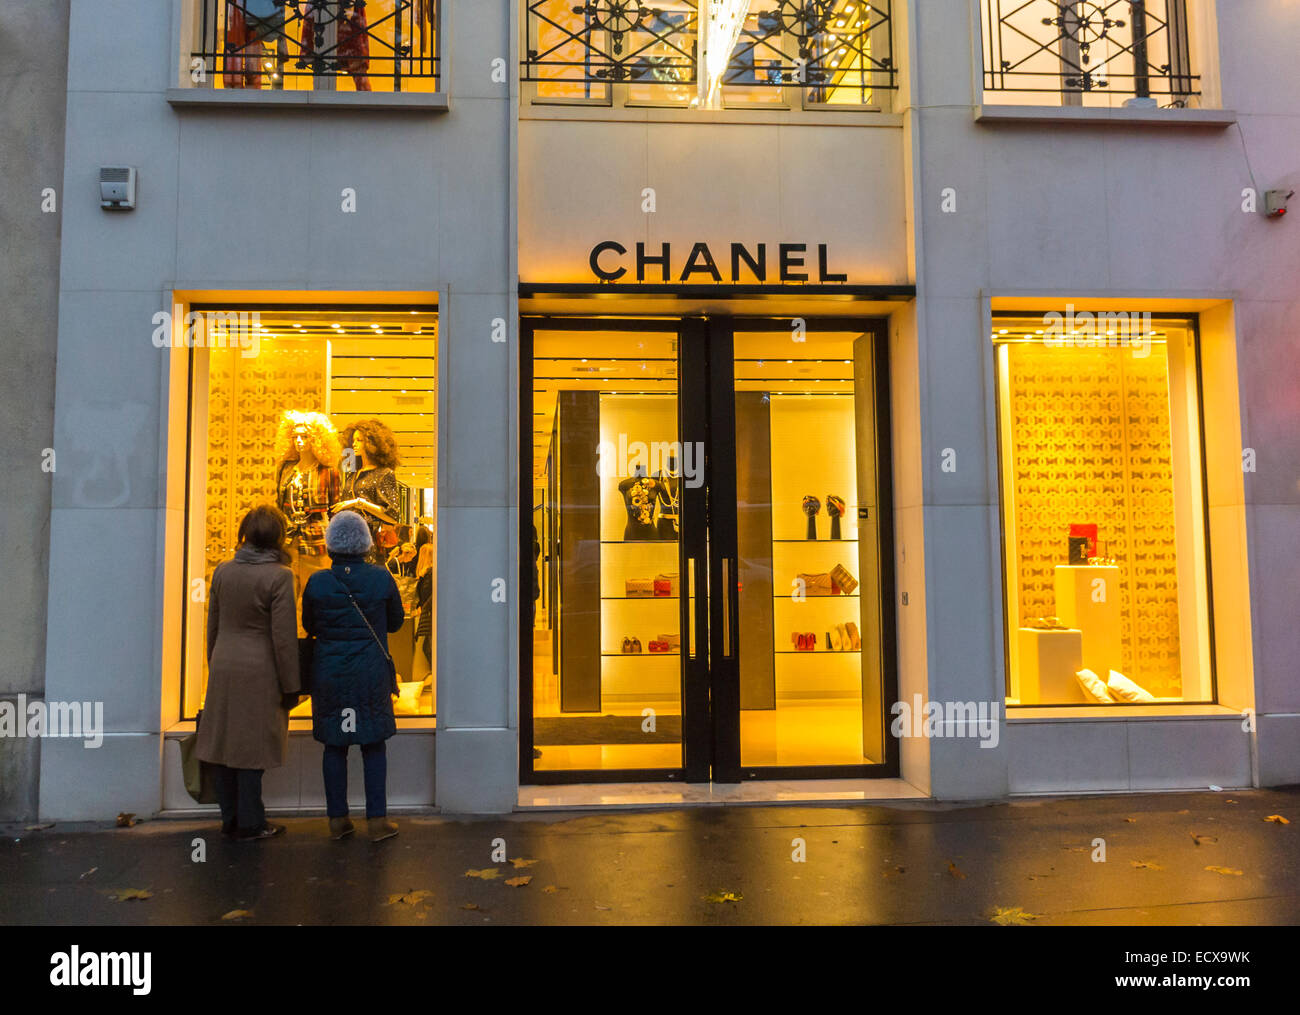 Famous Fashion Brands Of France